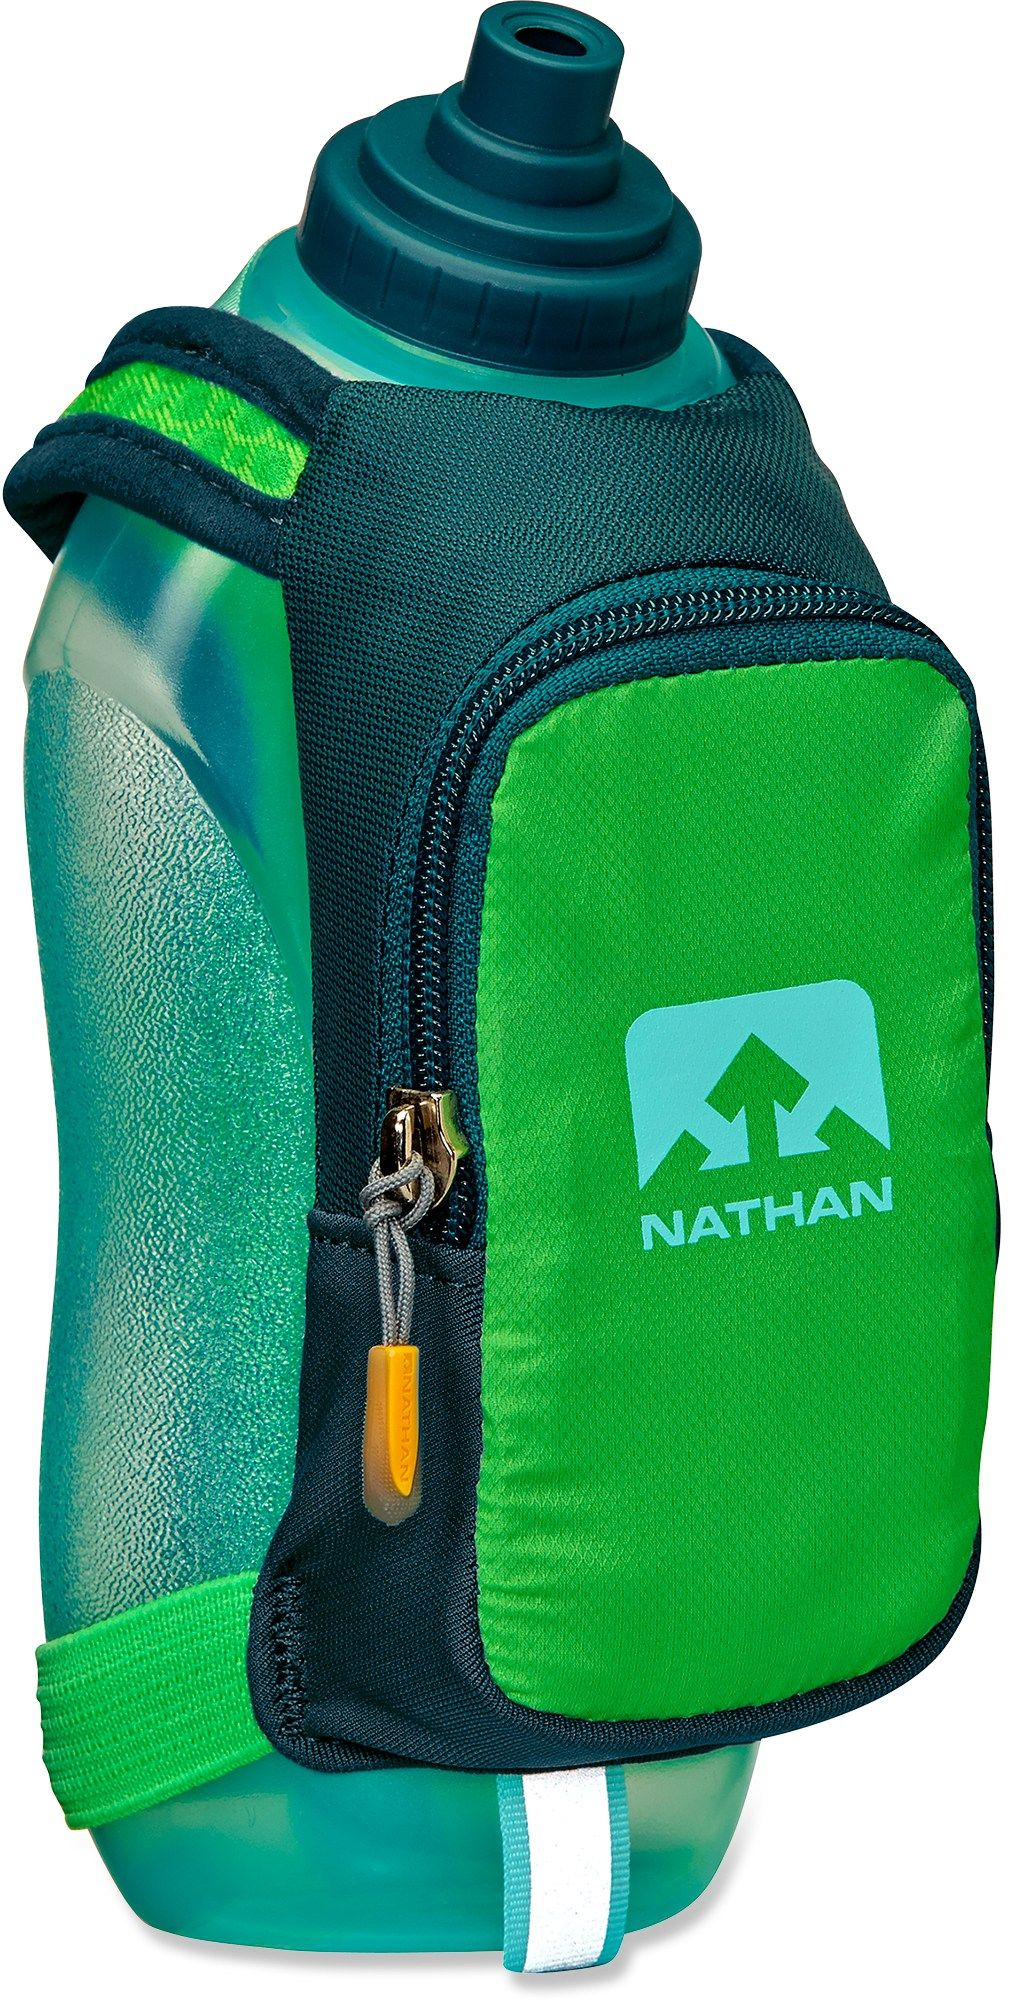 Nathan Speeddraw Plus Handheld Water Bottle Rei Co Op